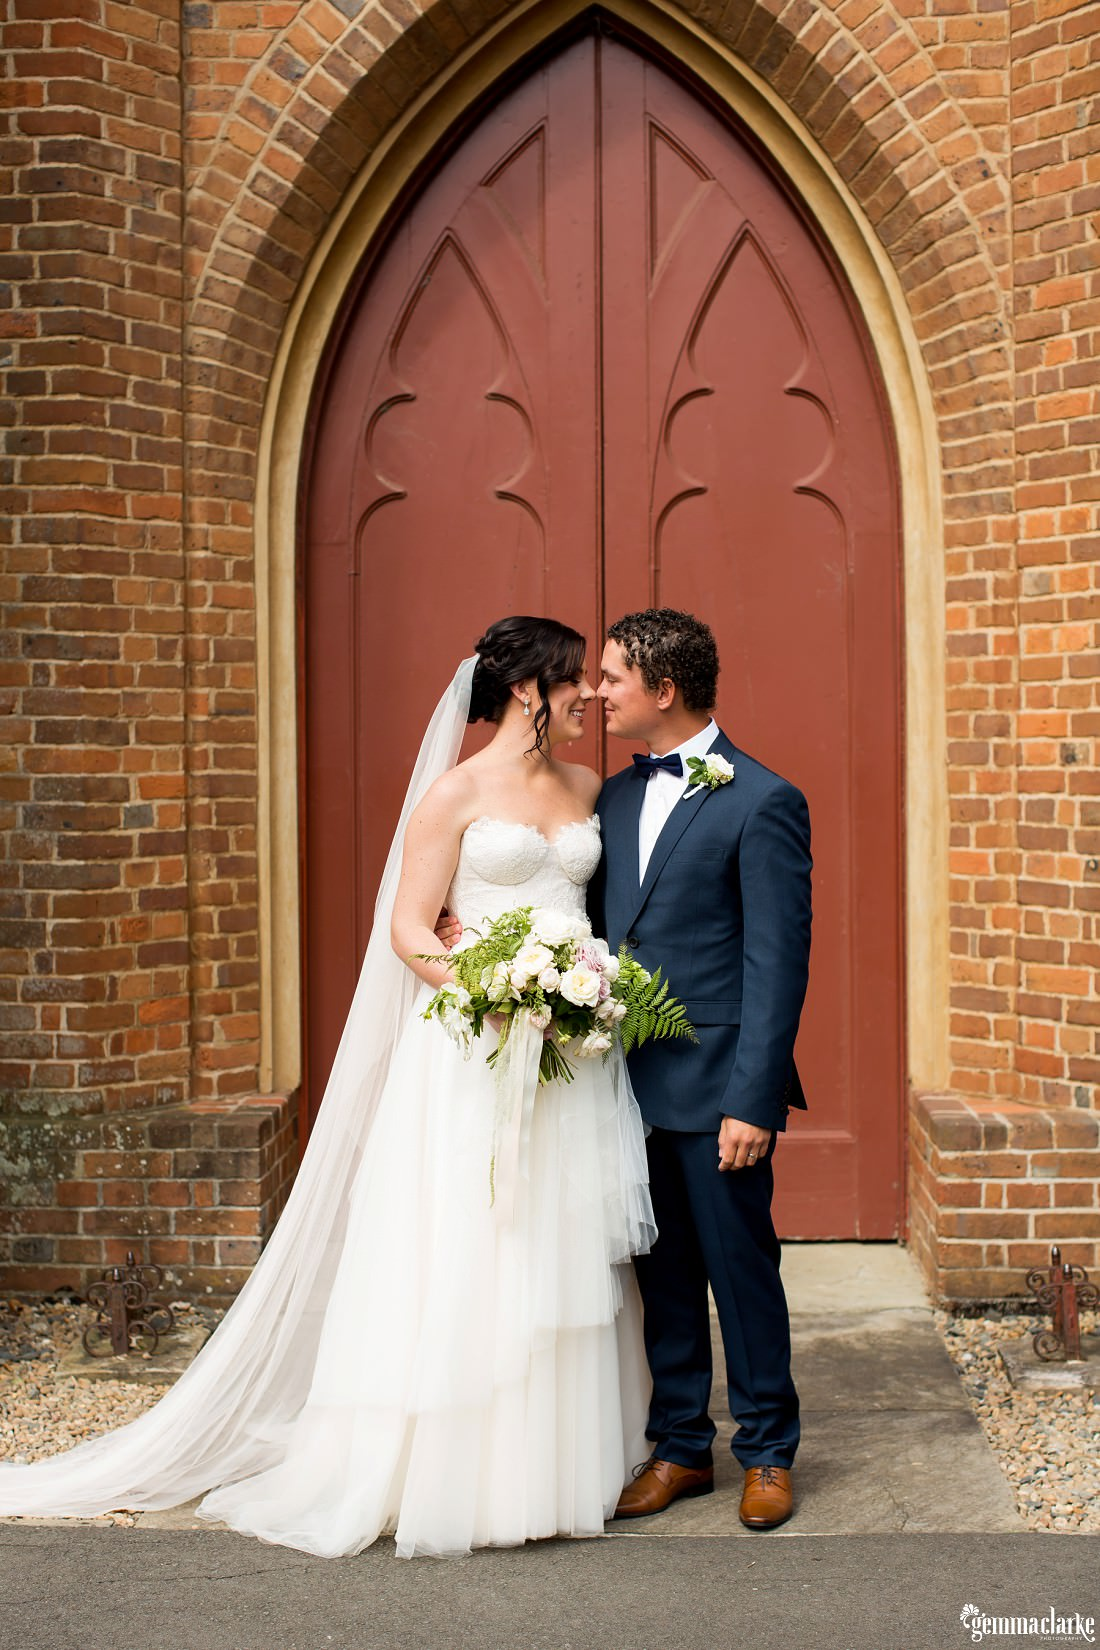 A bride and groom share an eskimo kiss in front of a church door